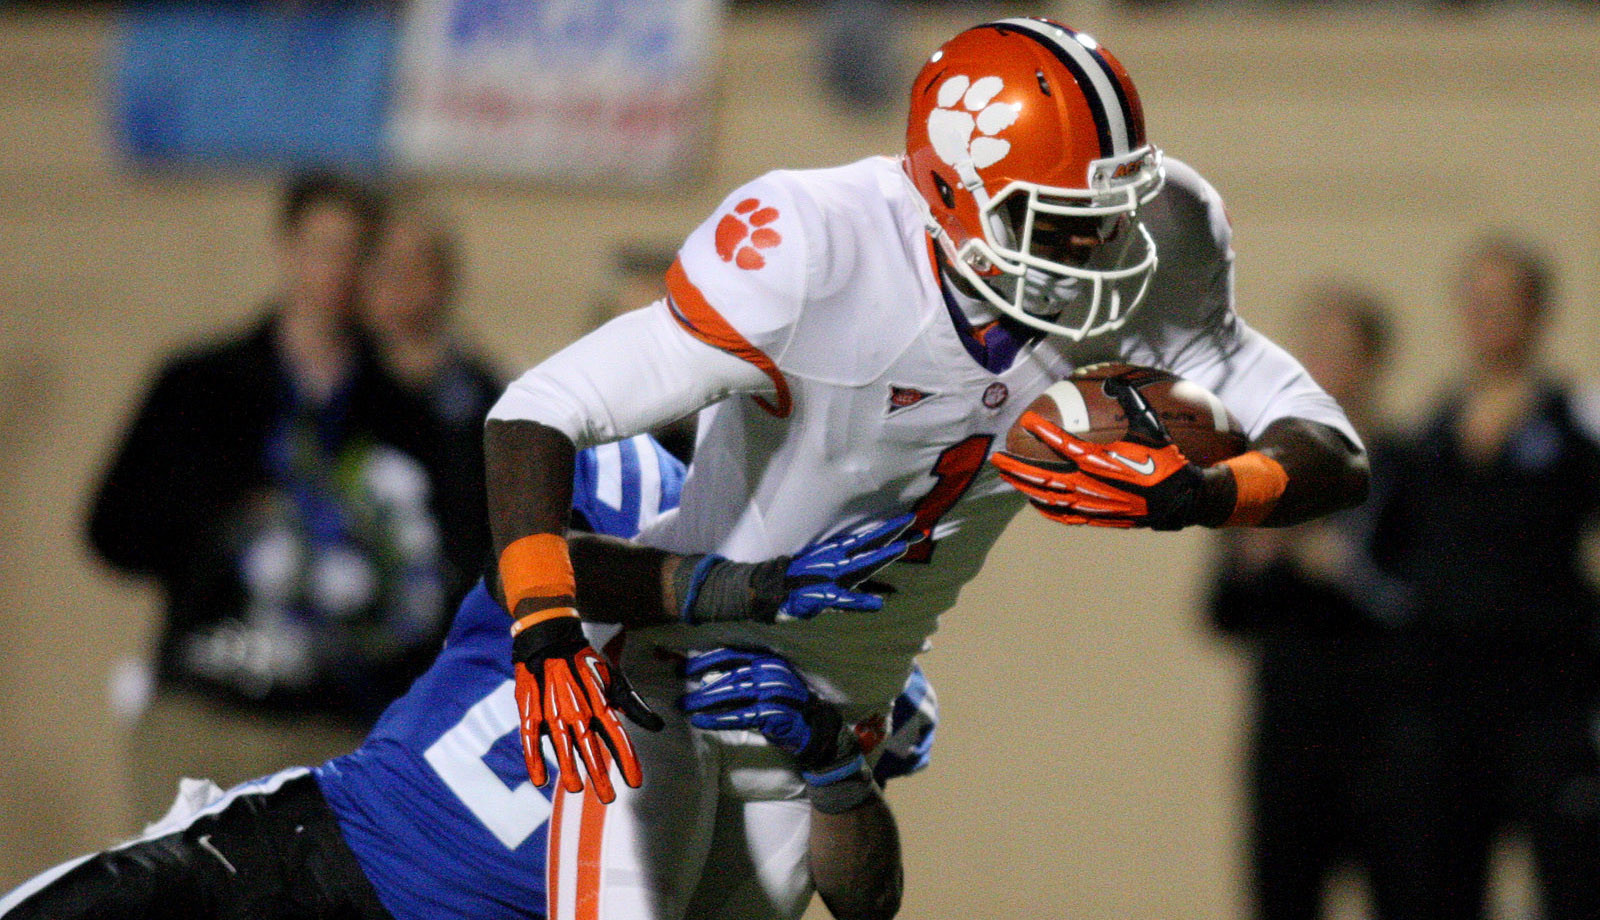 Television Networks Exercise Six-Day Option for Clemson vs. NC State Football Game